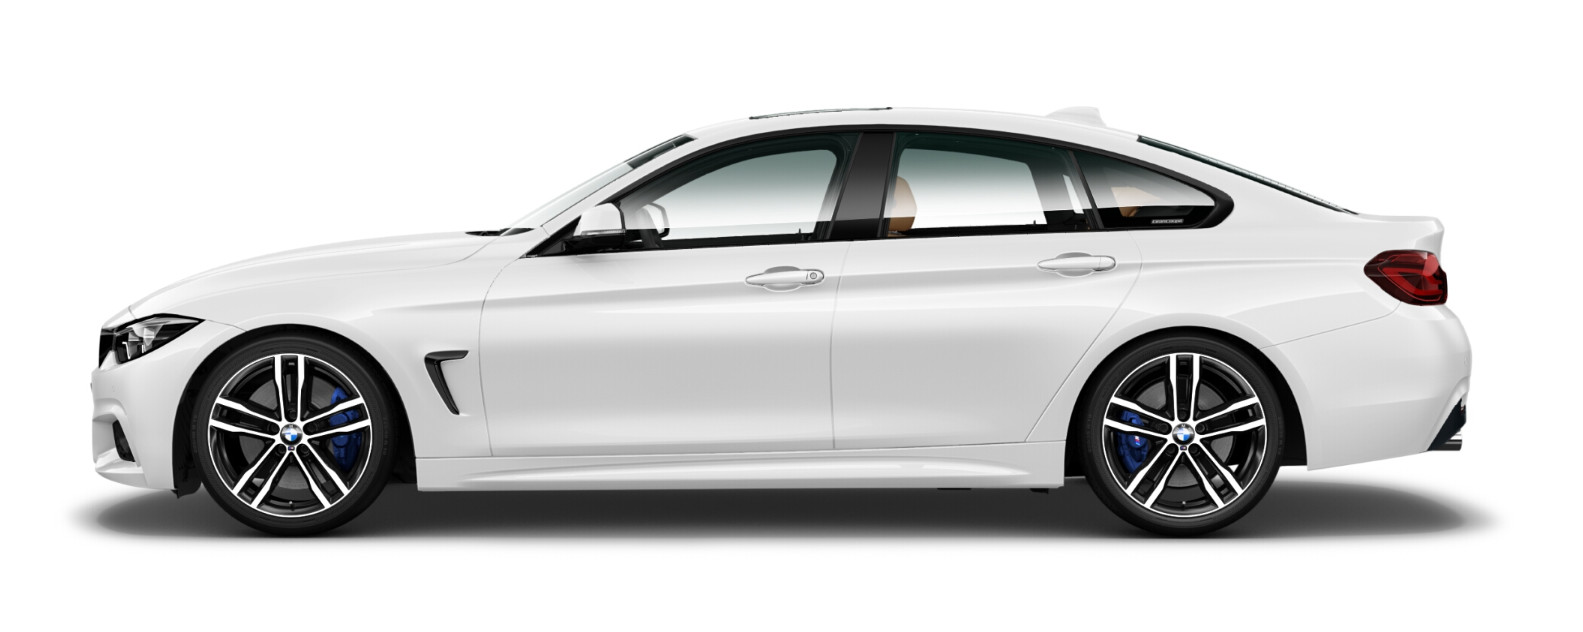 BMW-4-serie-Gran-Coupe-leasen-8